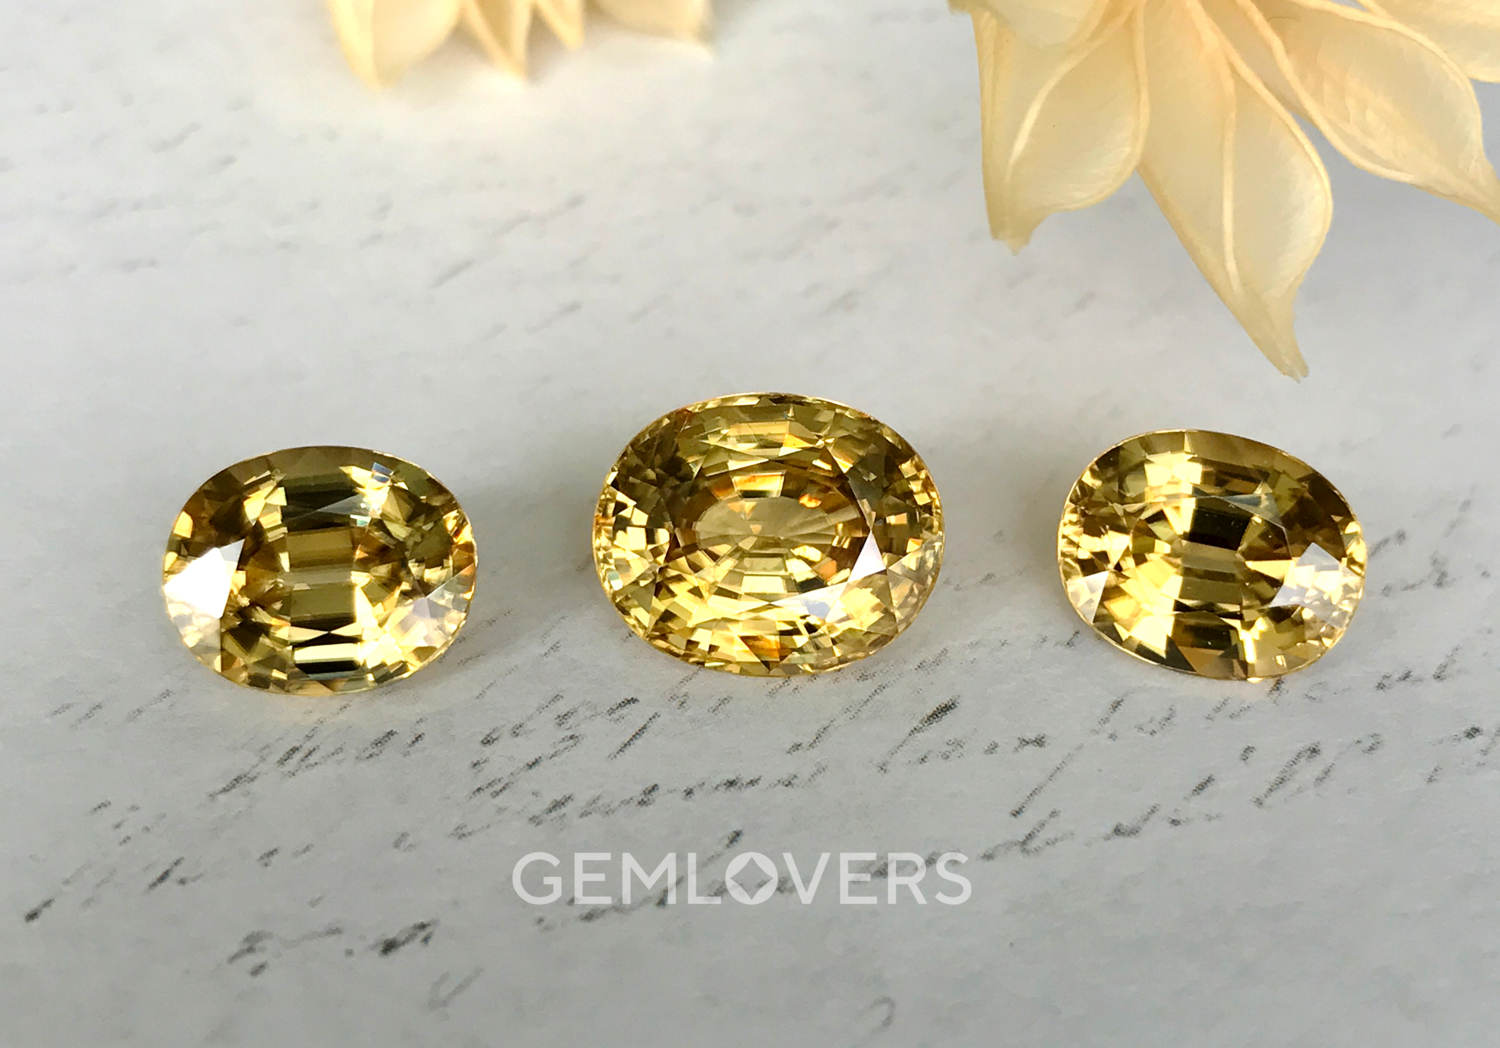 Set of natural yellow zircons in oval cut